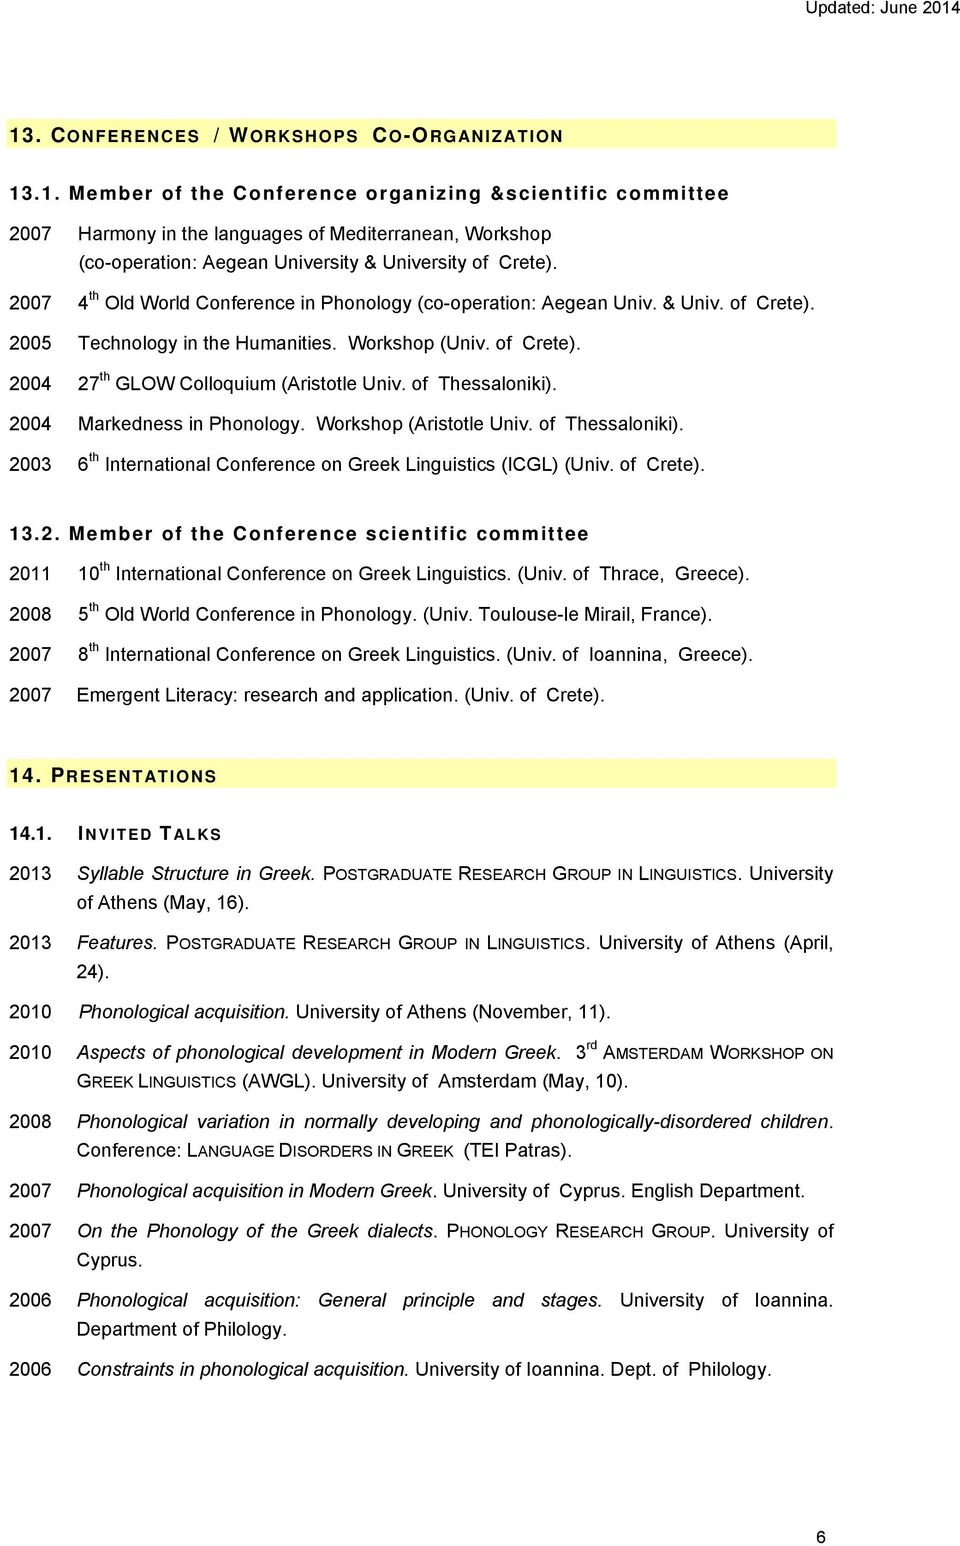 of Thessaloniki). 2004 Markedness in Phonology. Workshop (Aristotle Univ. of Thessaloniki). 2003 6 th International Conference on Greek Linguistics (ICGL) (Univ. of Crete). 13.2. Member of the Conference scientific committee 2011 10 th International Conference on Greek Linguistics.